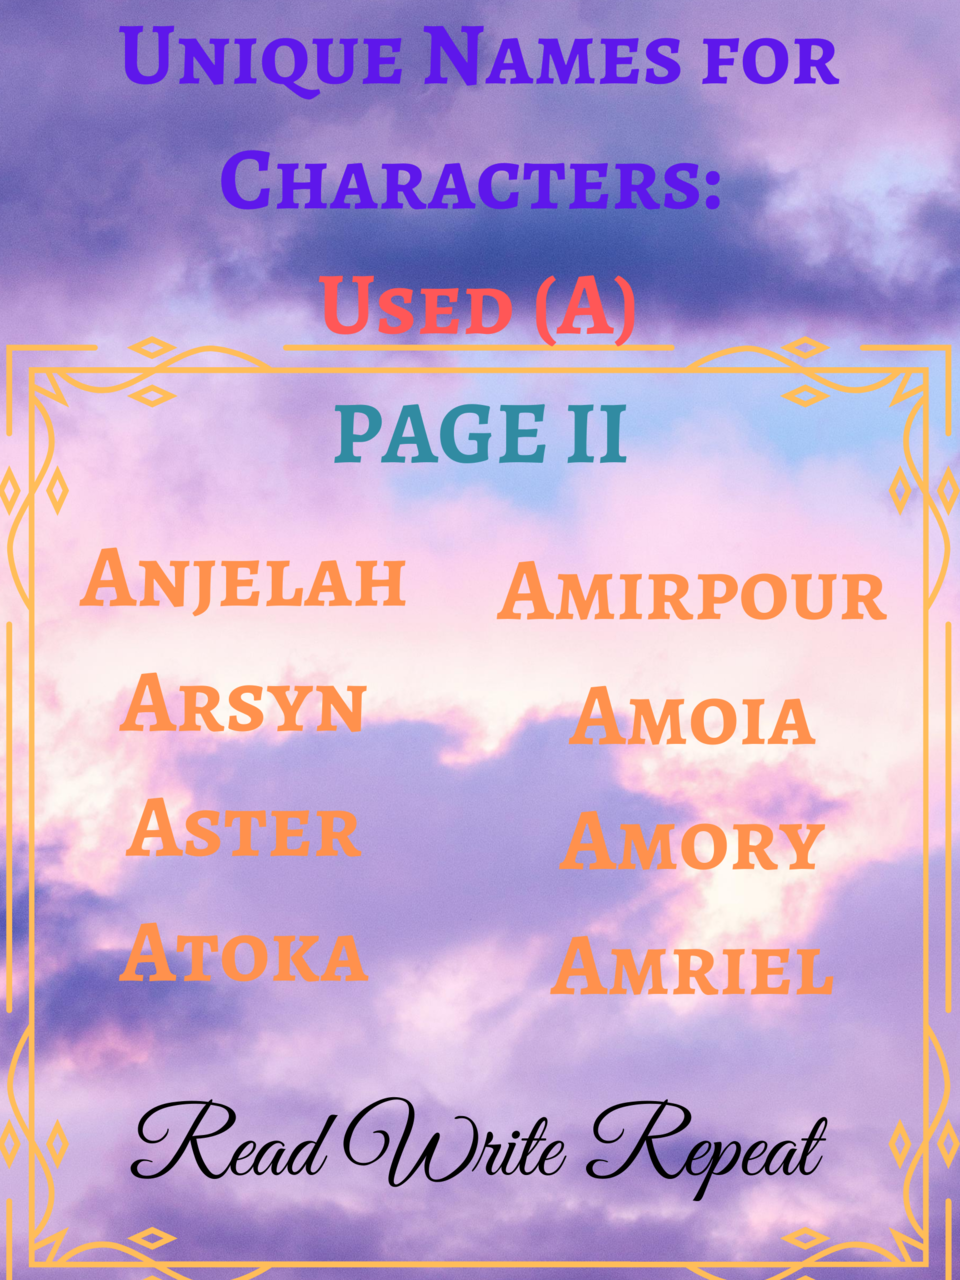 character, story, and name image